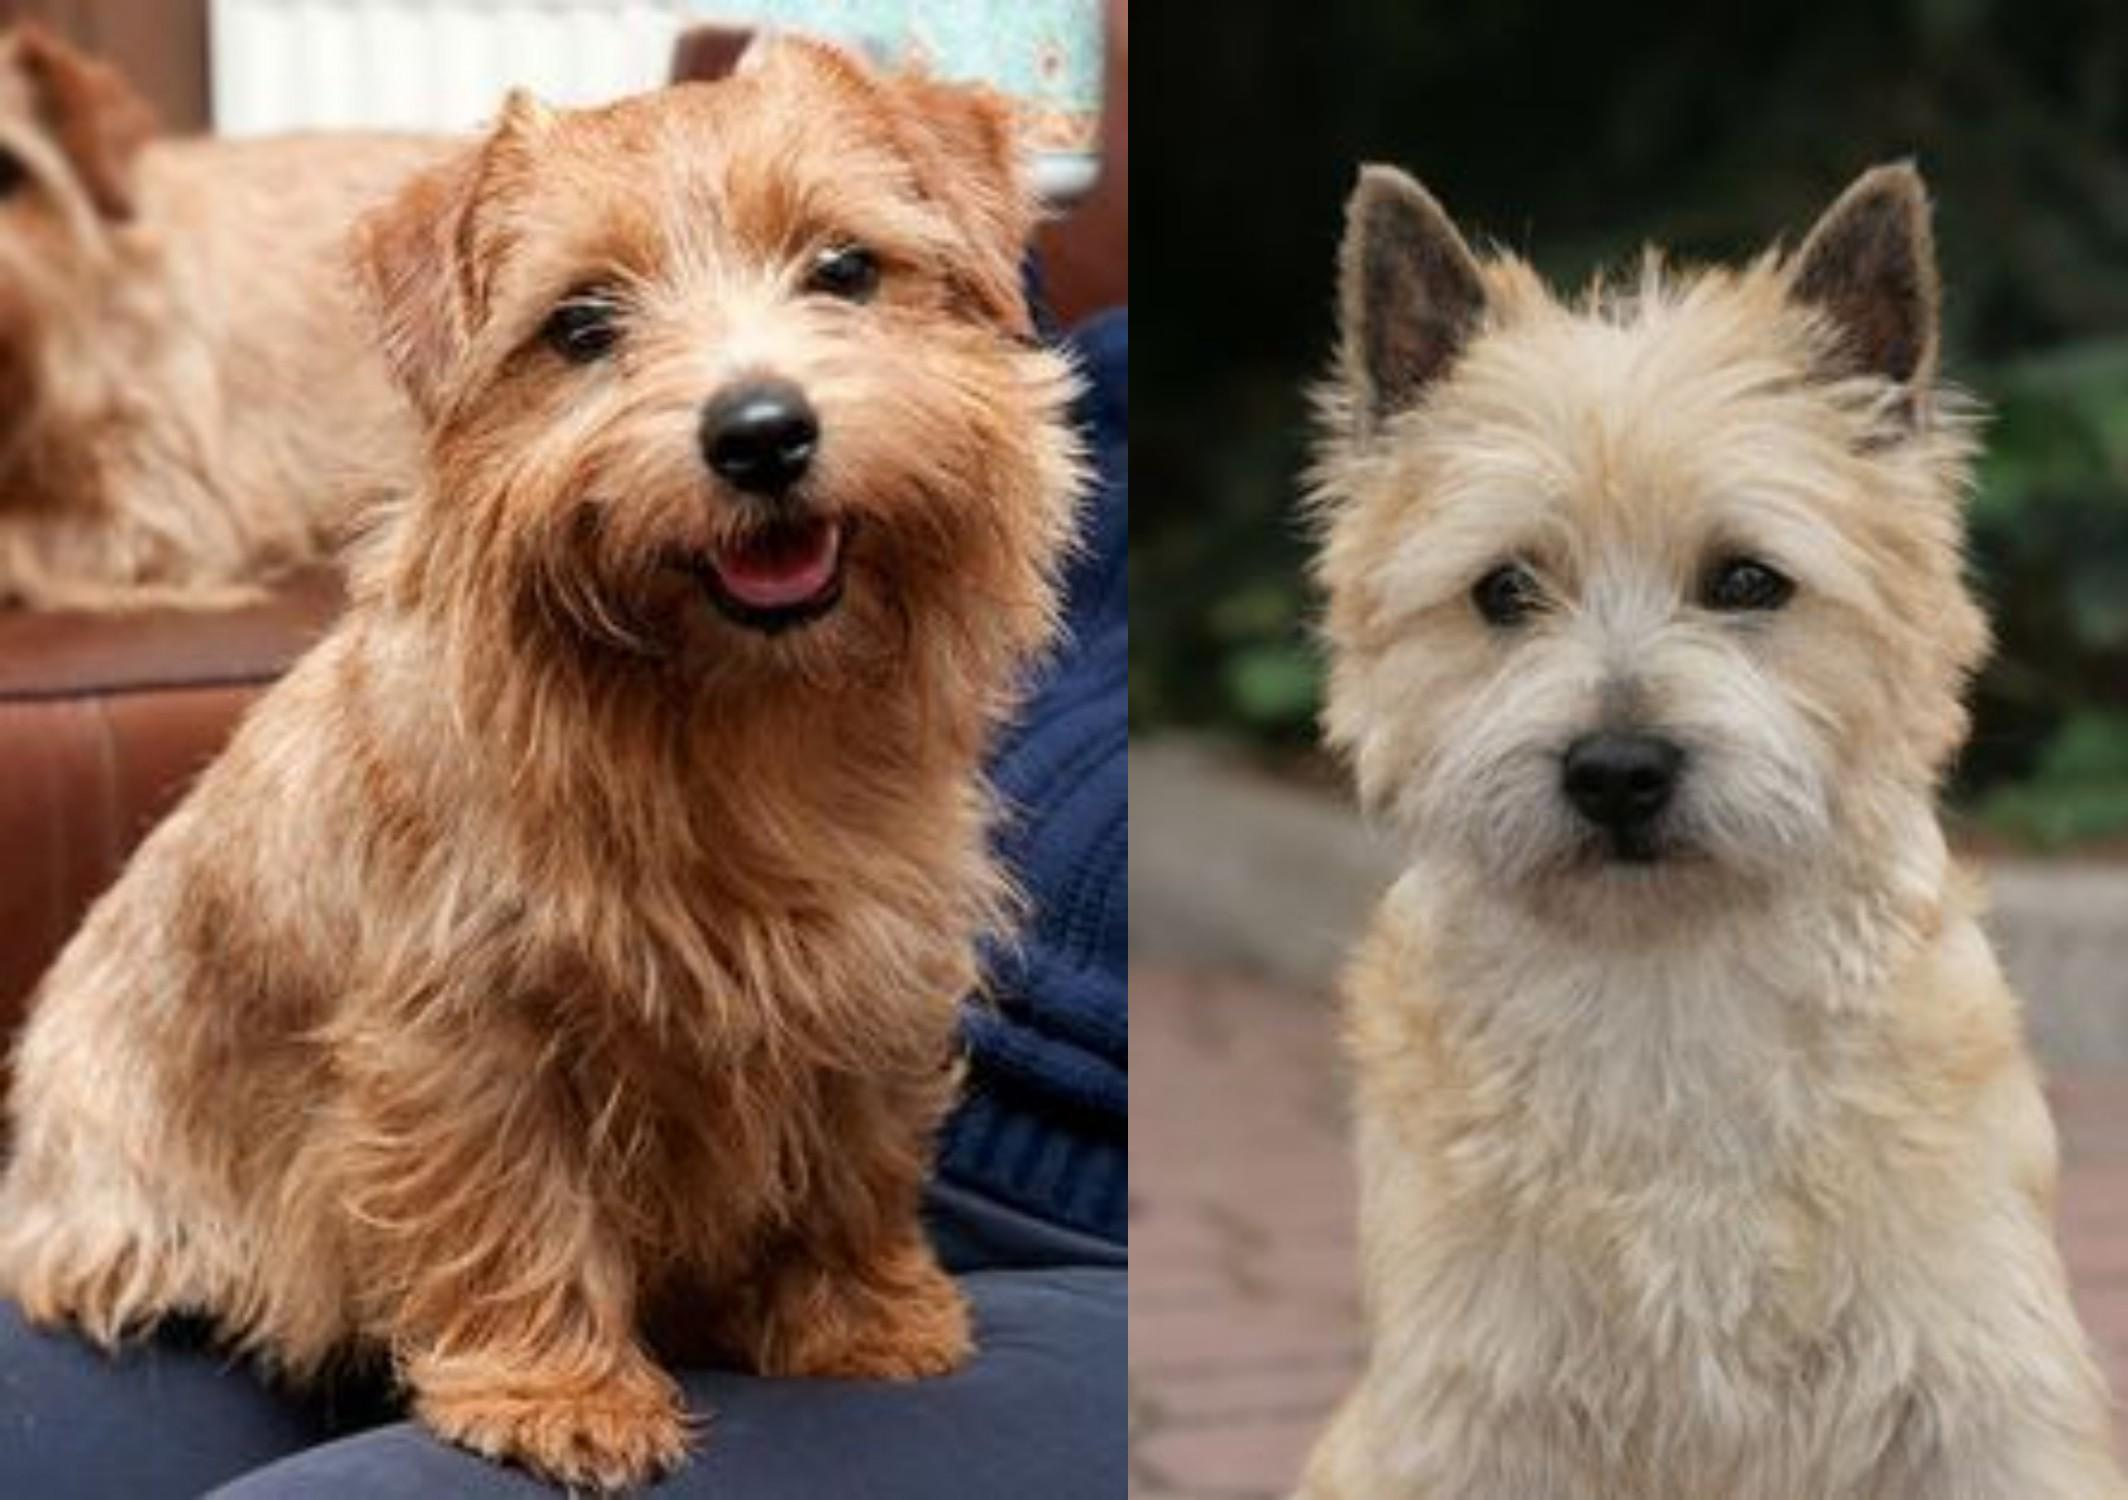 Norfolk Terrier And Cairn Terrier Mix - Cute of Animals